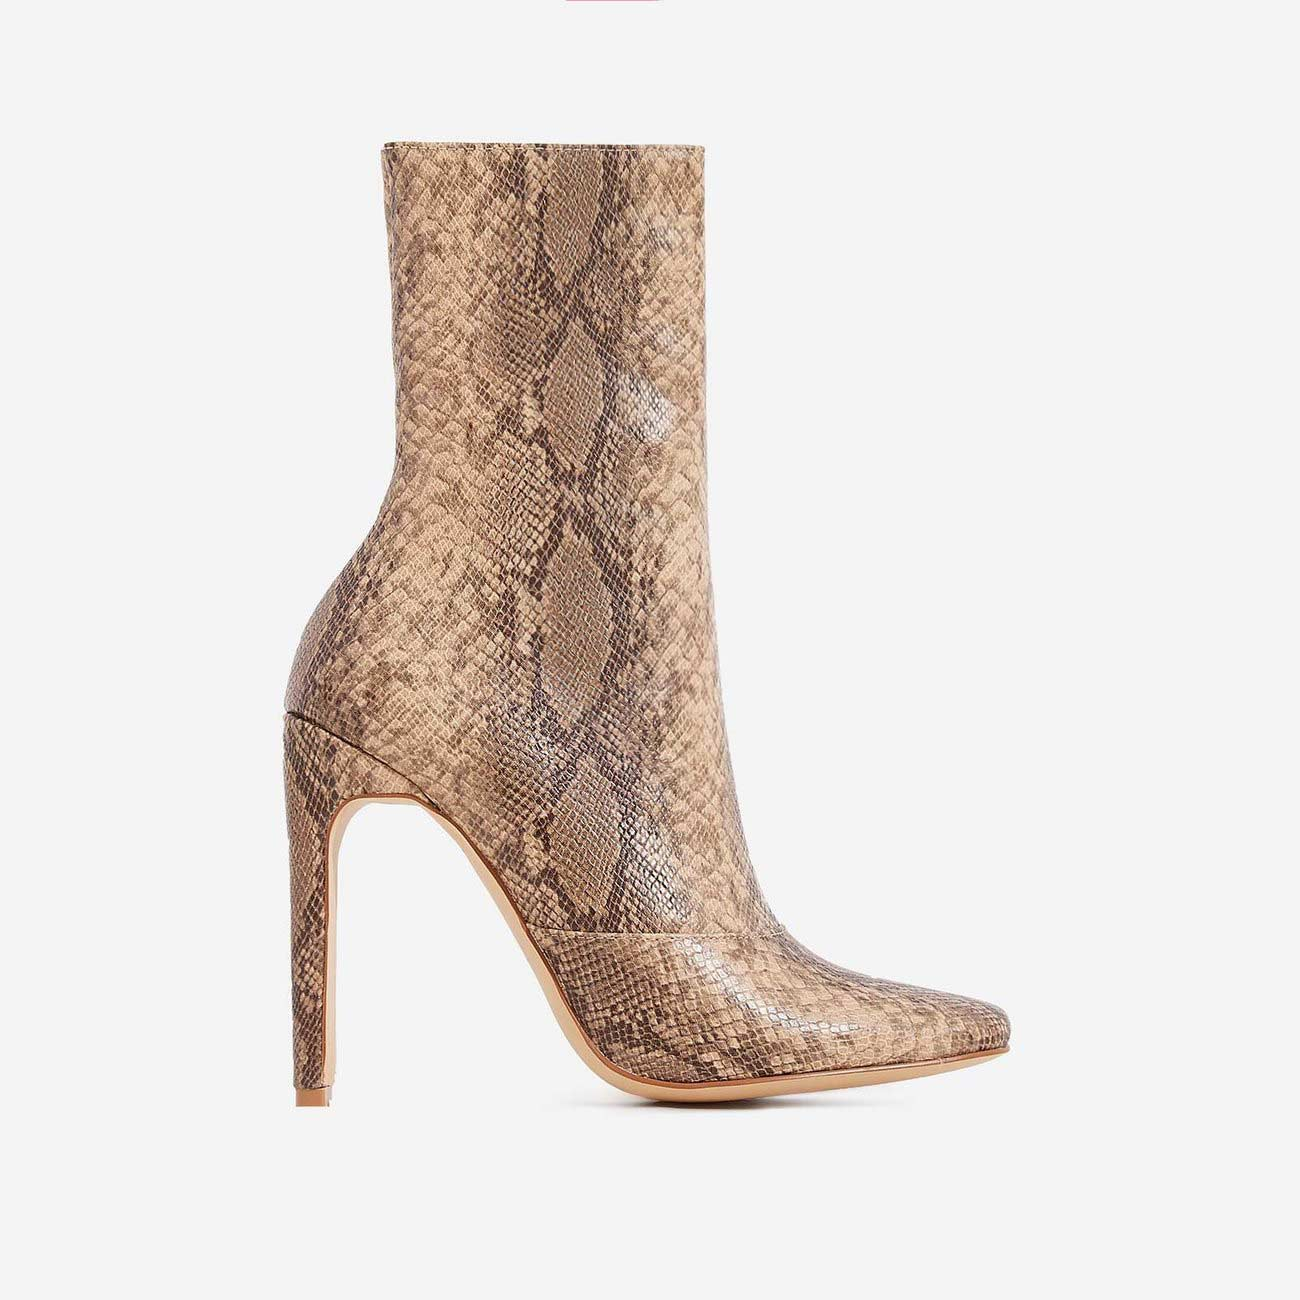 48c195ba6322 Boomslang Flat Heel Ankle Boot In Nude Snake Print Faux Leather